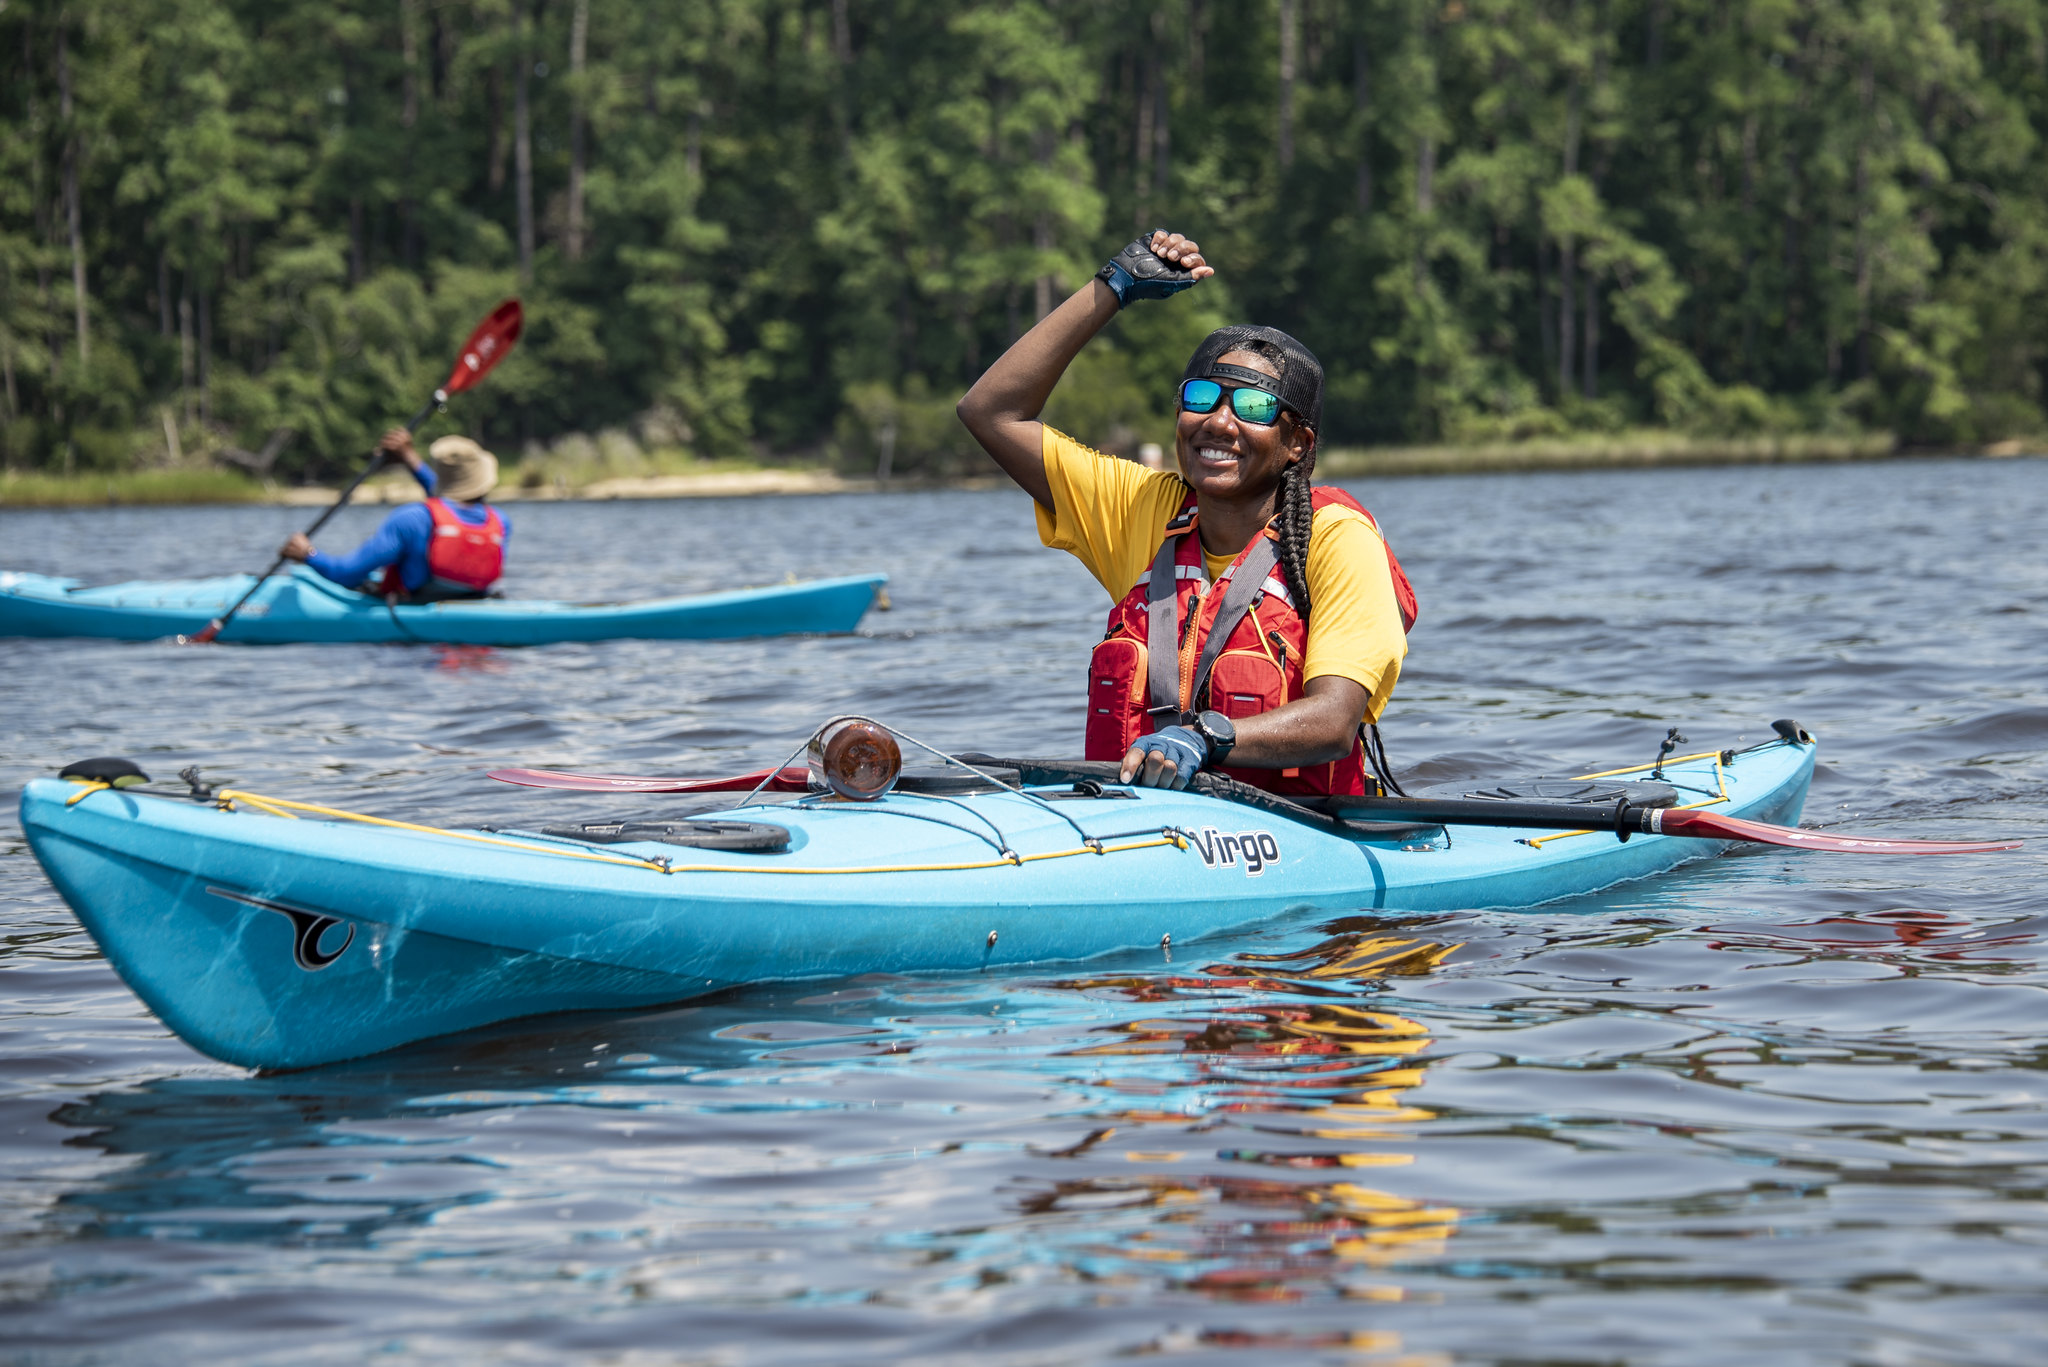 NRS outdoor afro participant paddling